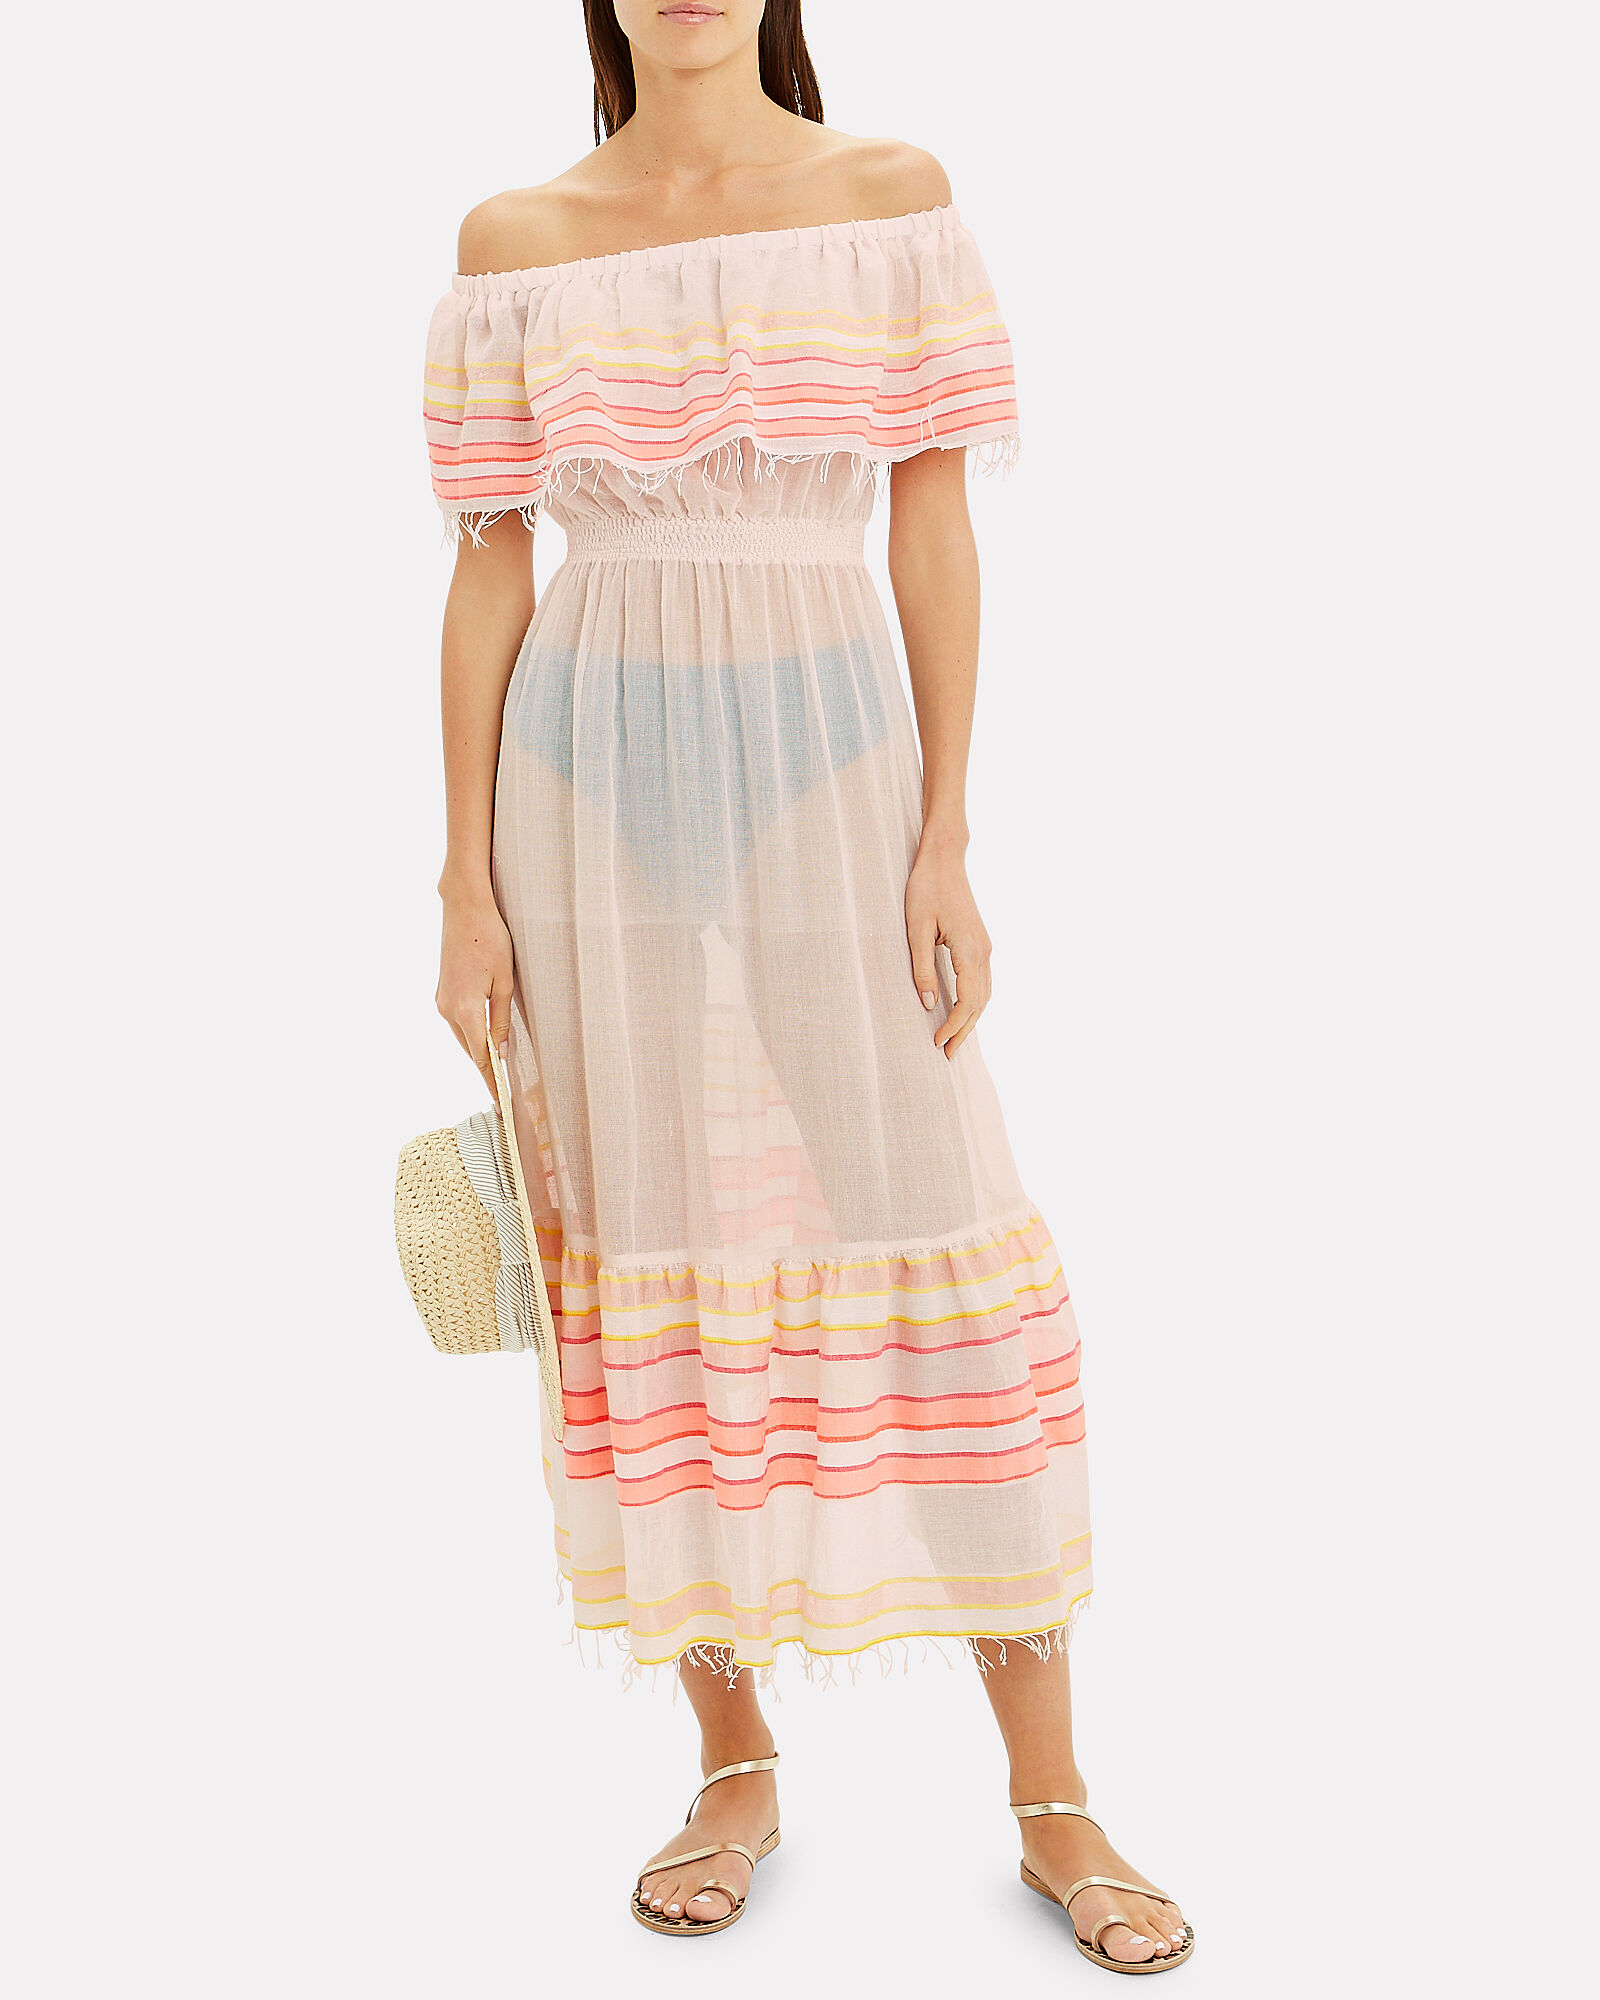 Eskedar Off-The-Shoulder Striped Dress, MULTI, hi-res